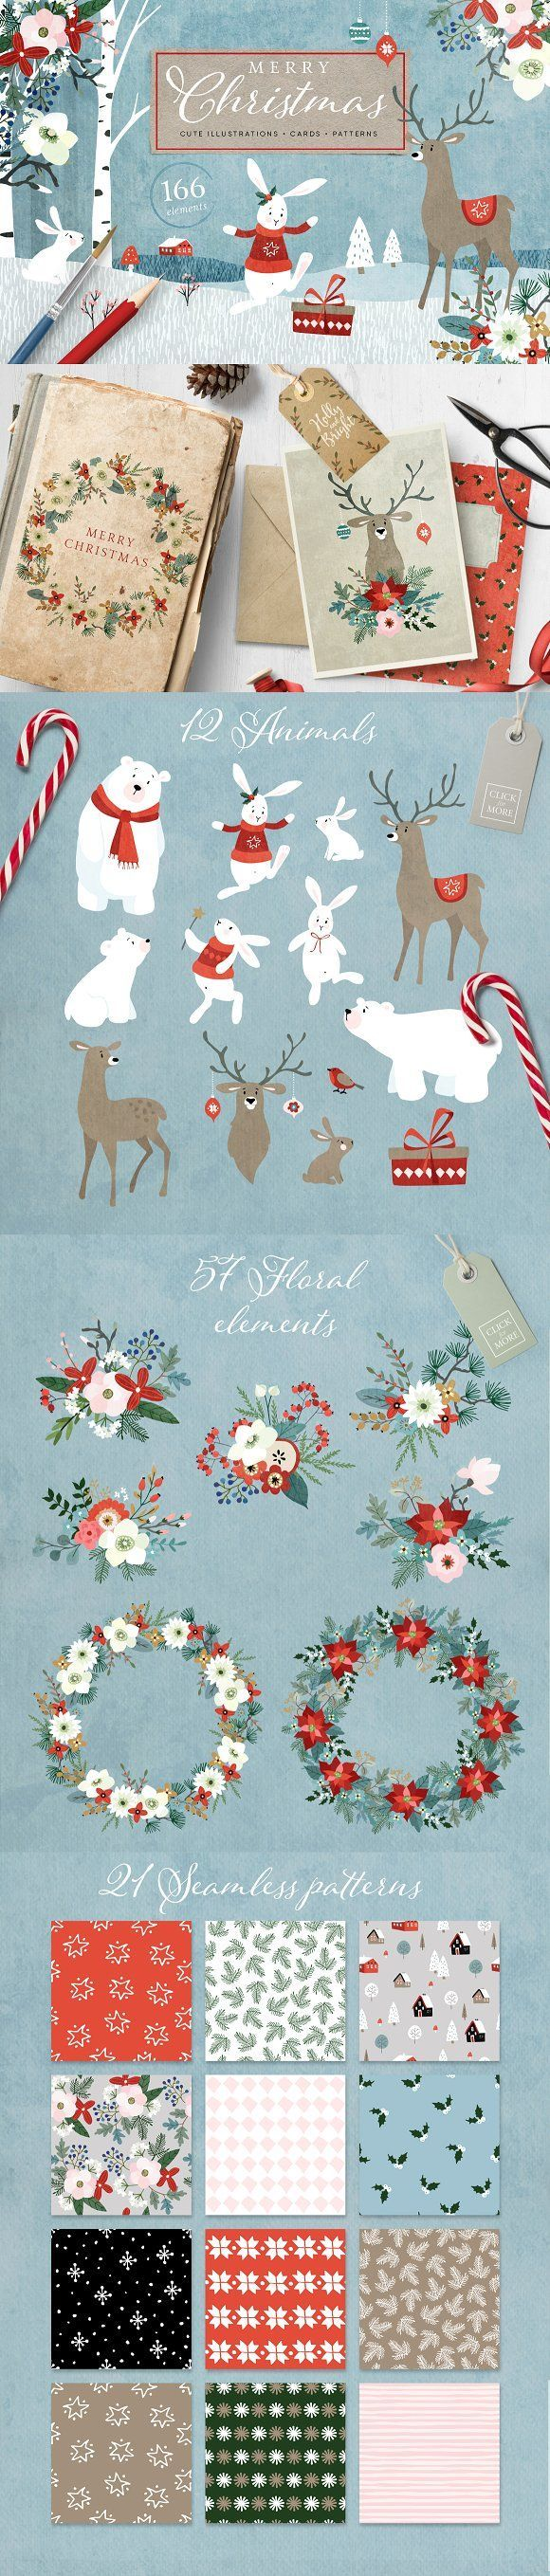 Merry Christmas set, 166 elements by Tabita's shop on @creativemarket